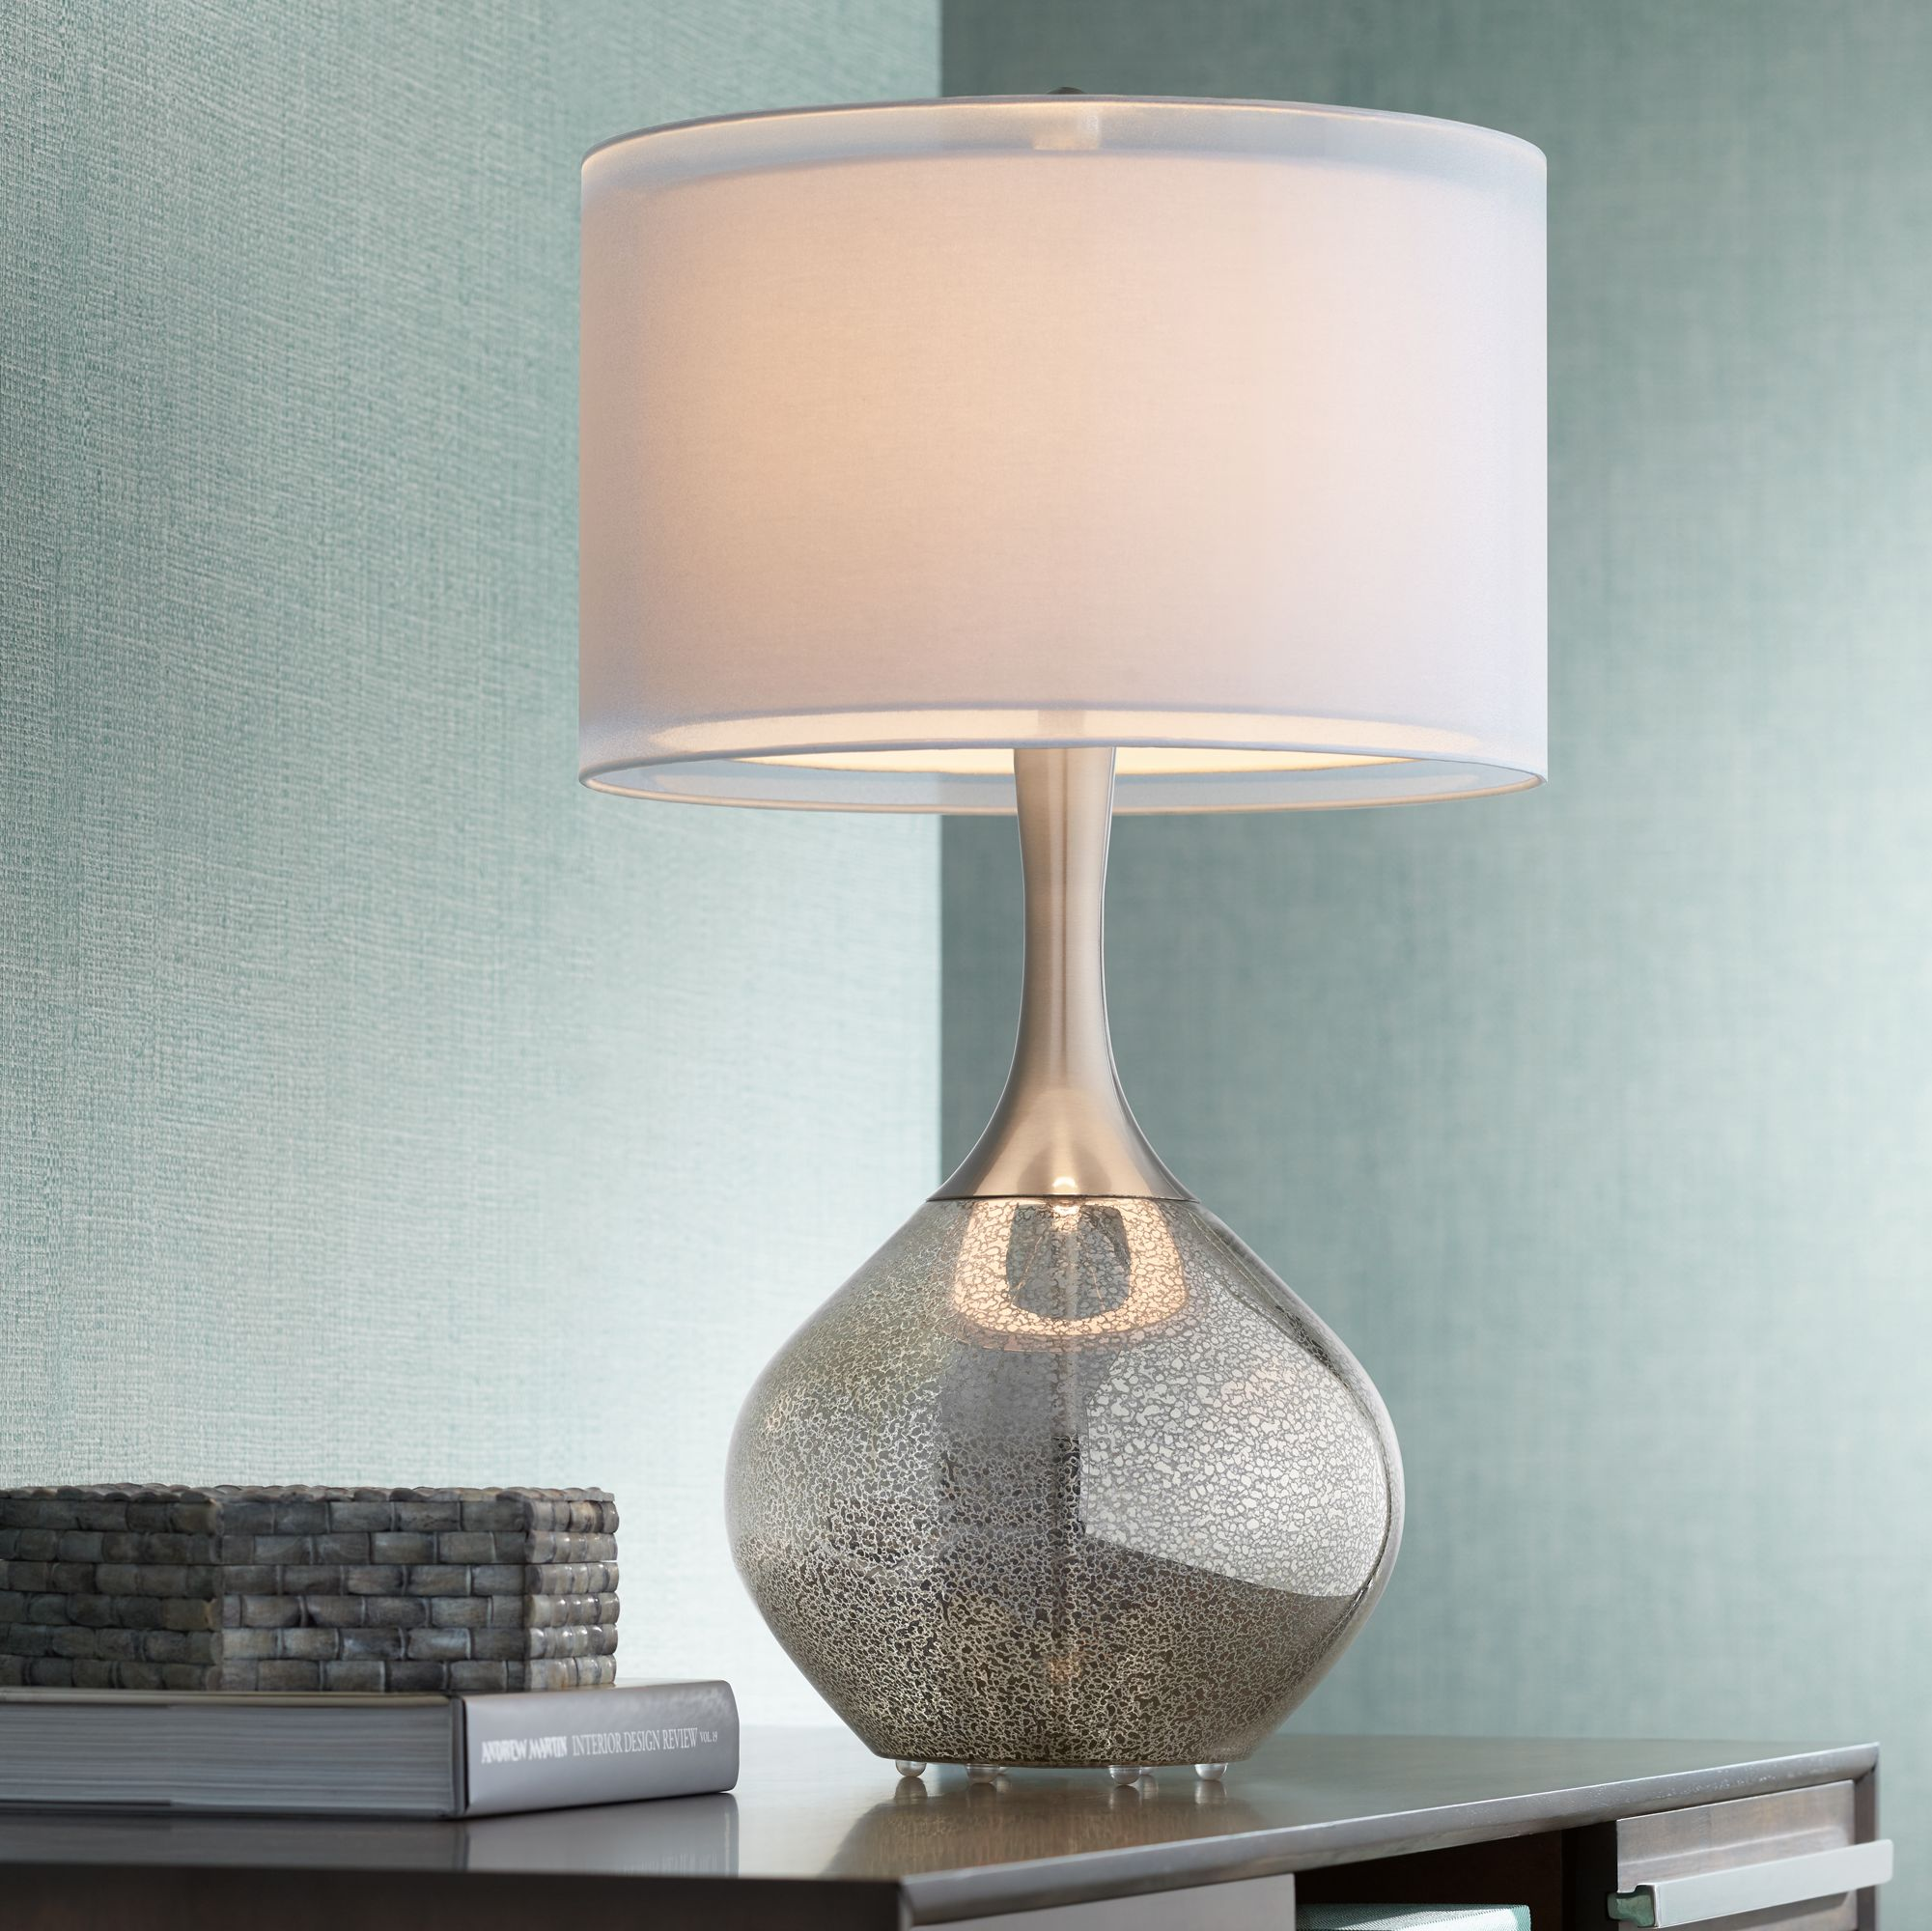 Delightful Possini Euro Design Swift Modern Mercury Glass Table Lamp